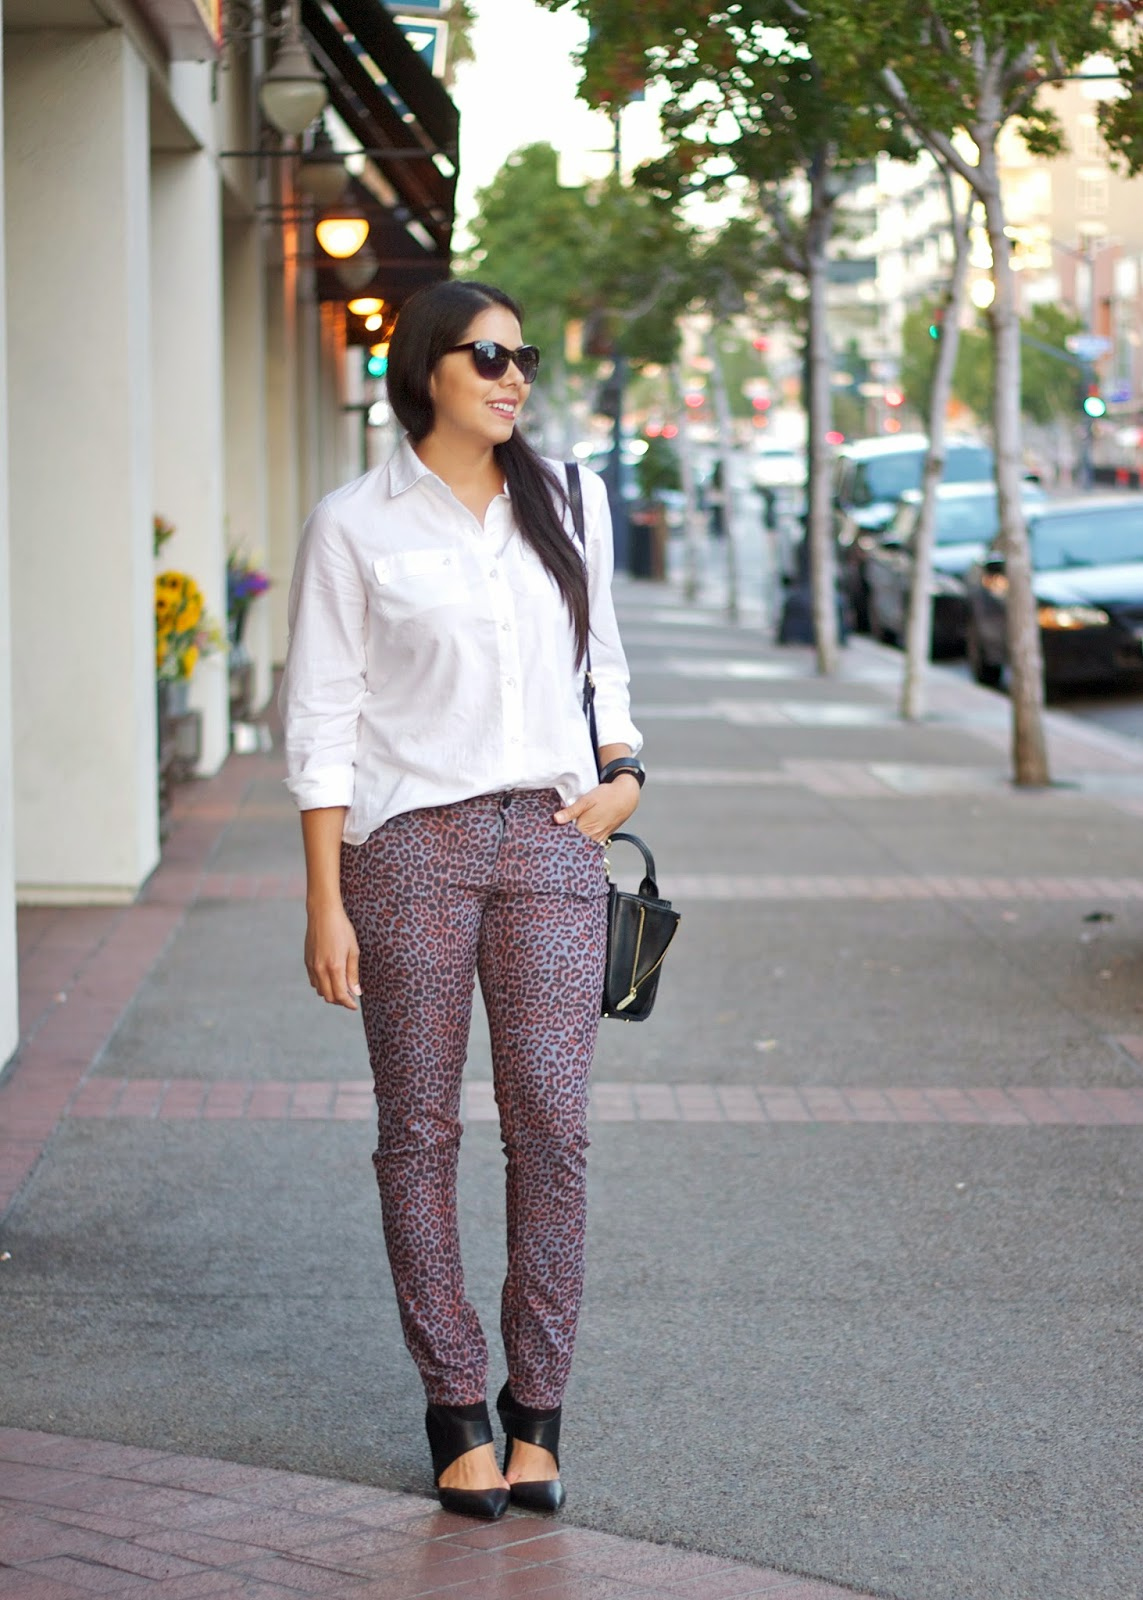 Leopard Skinny Jeans, Tommy Hilfiger ROLL-SLEEVE LINEN SHIRT, san diego fashion blogger, downtown san diego street style, downtown street style